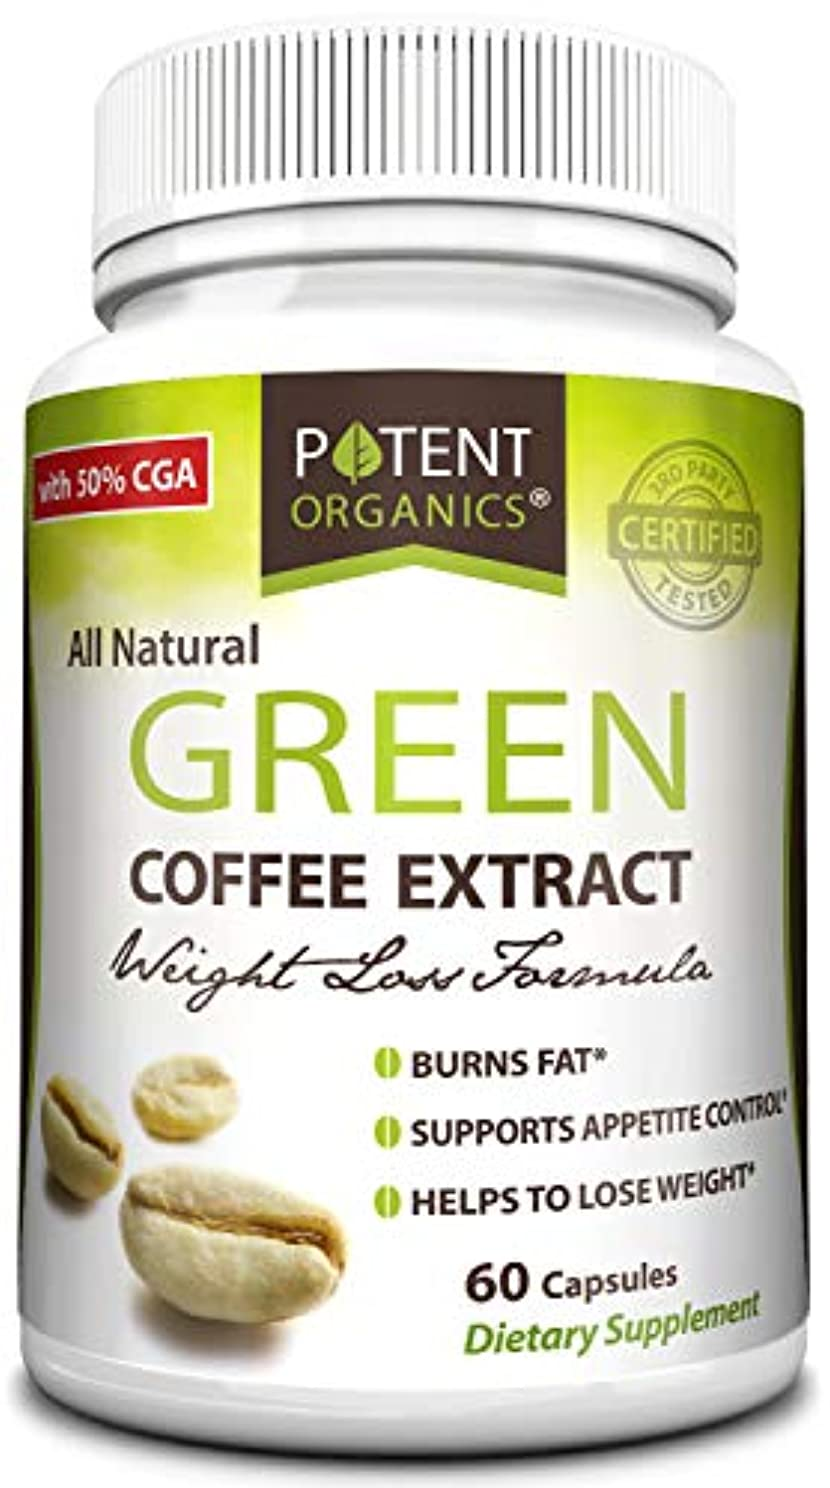 準備ができて体操選手施設Pure Green Coffee Extract in 60 Capsules